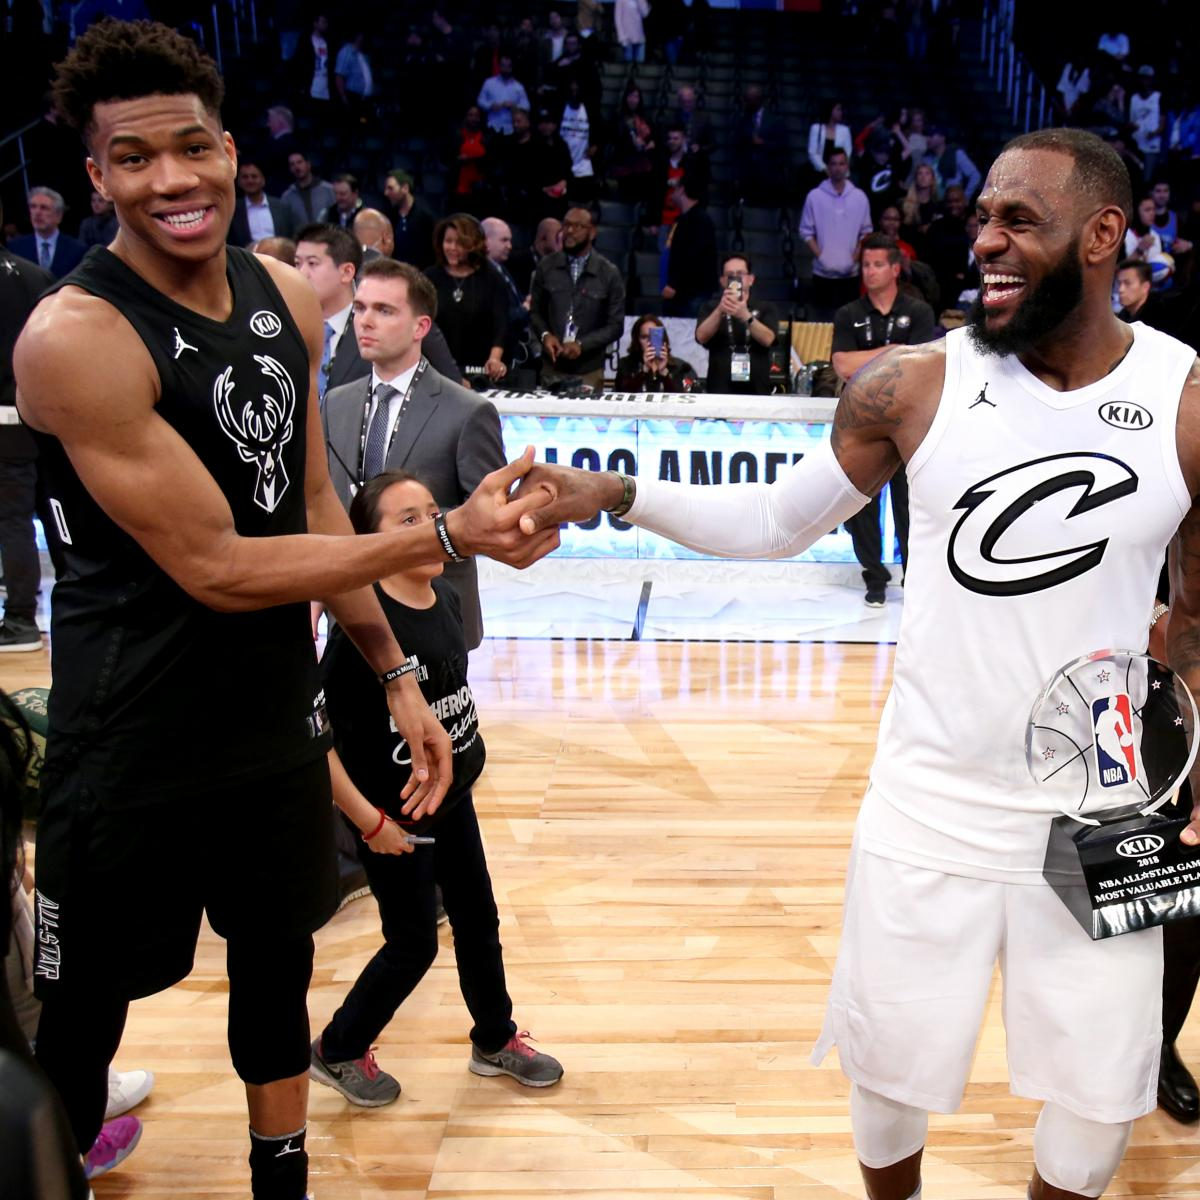 NBA All-Star Game 2019 Draft: TV Schedule For LeBron Vs